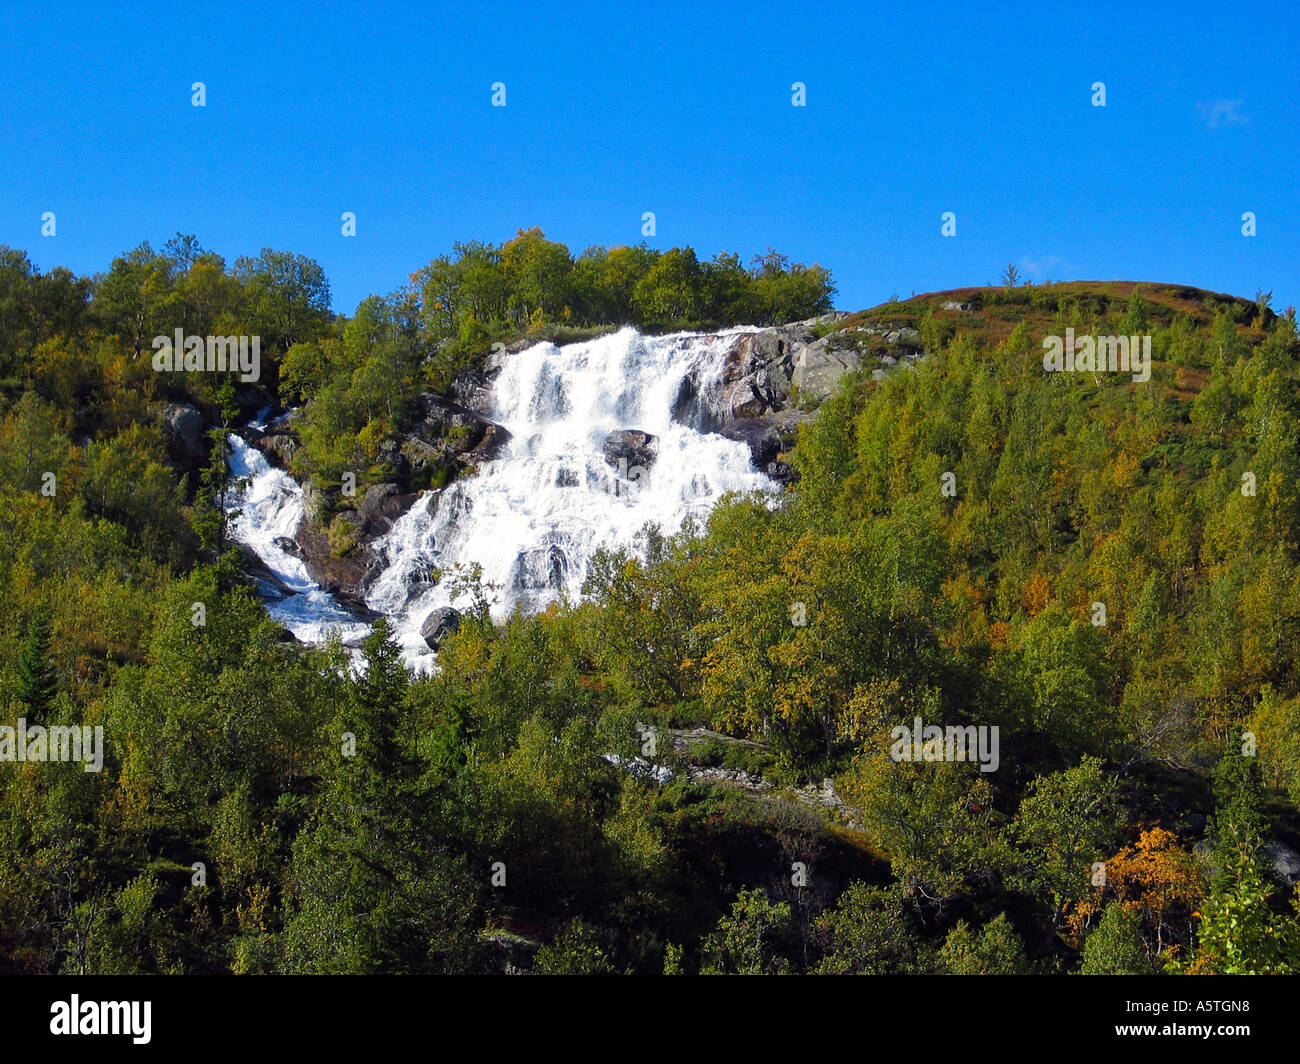 Waterfall on slettefjell Norway - Stock Image